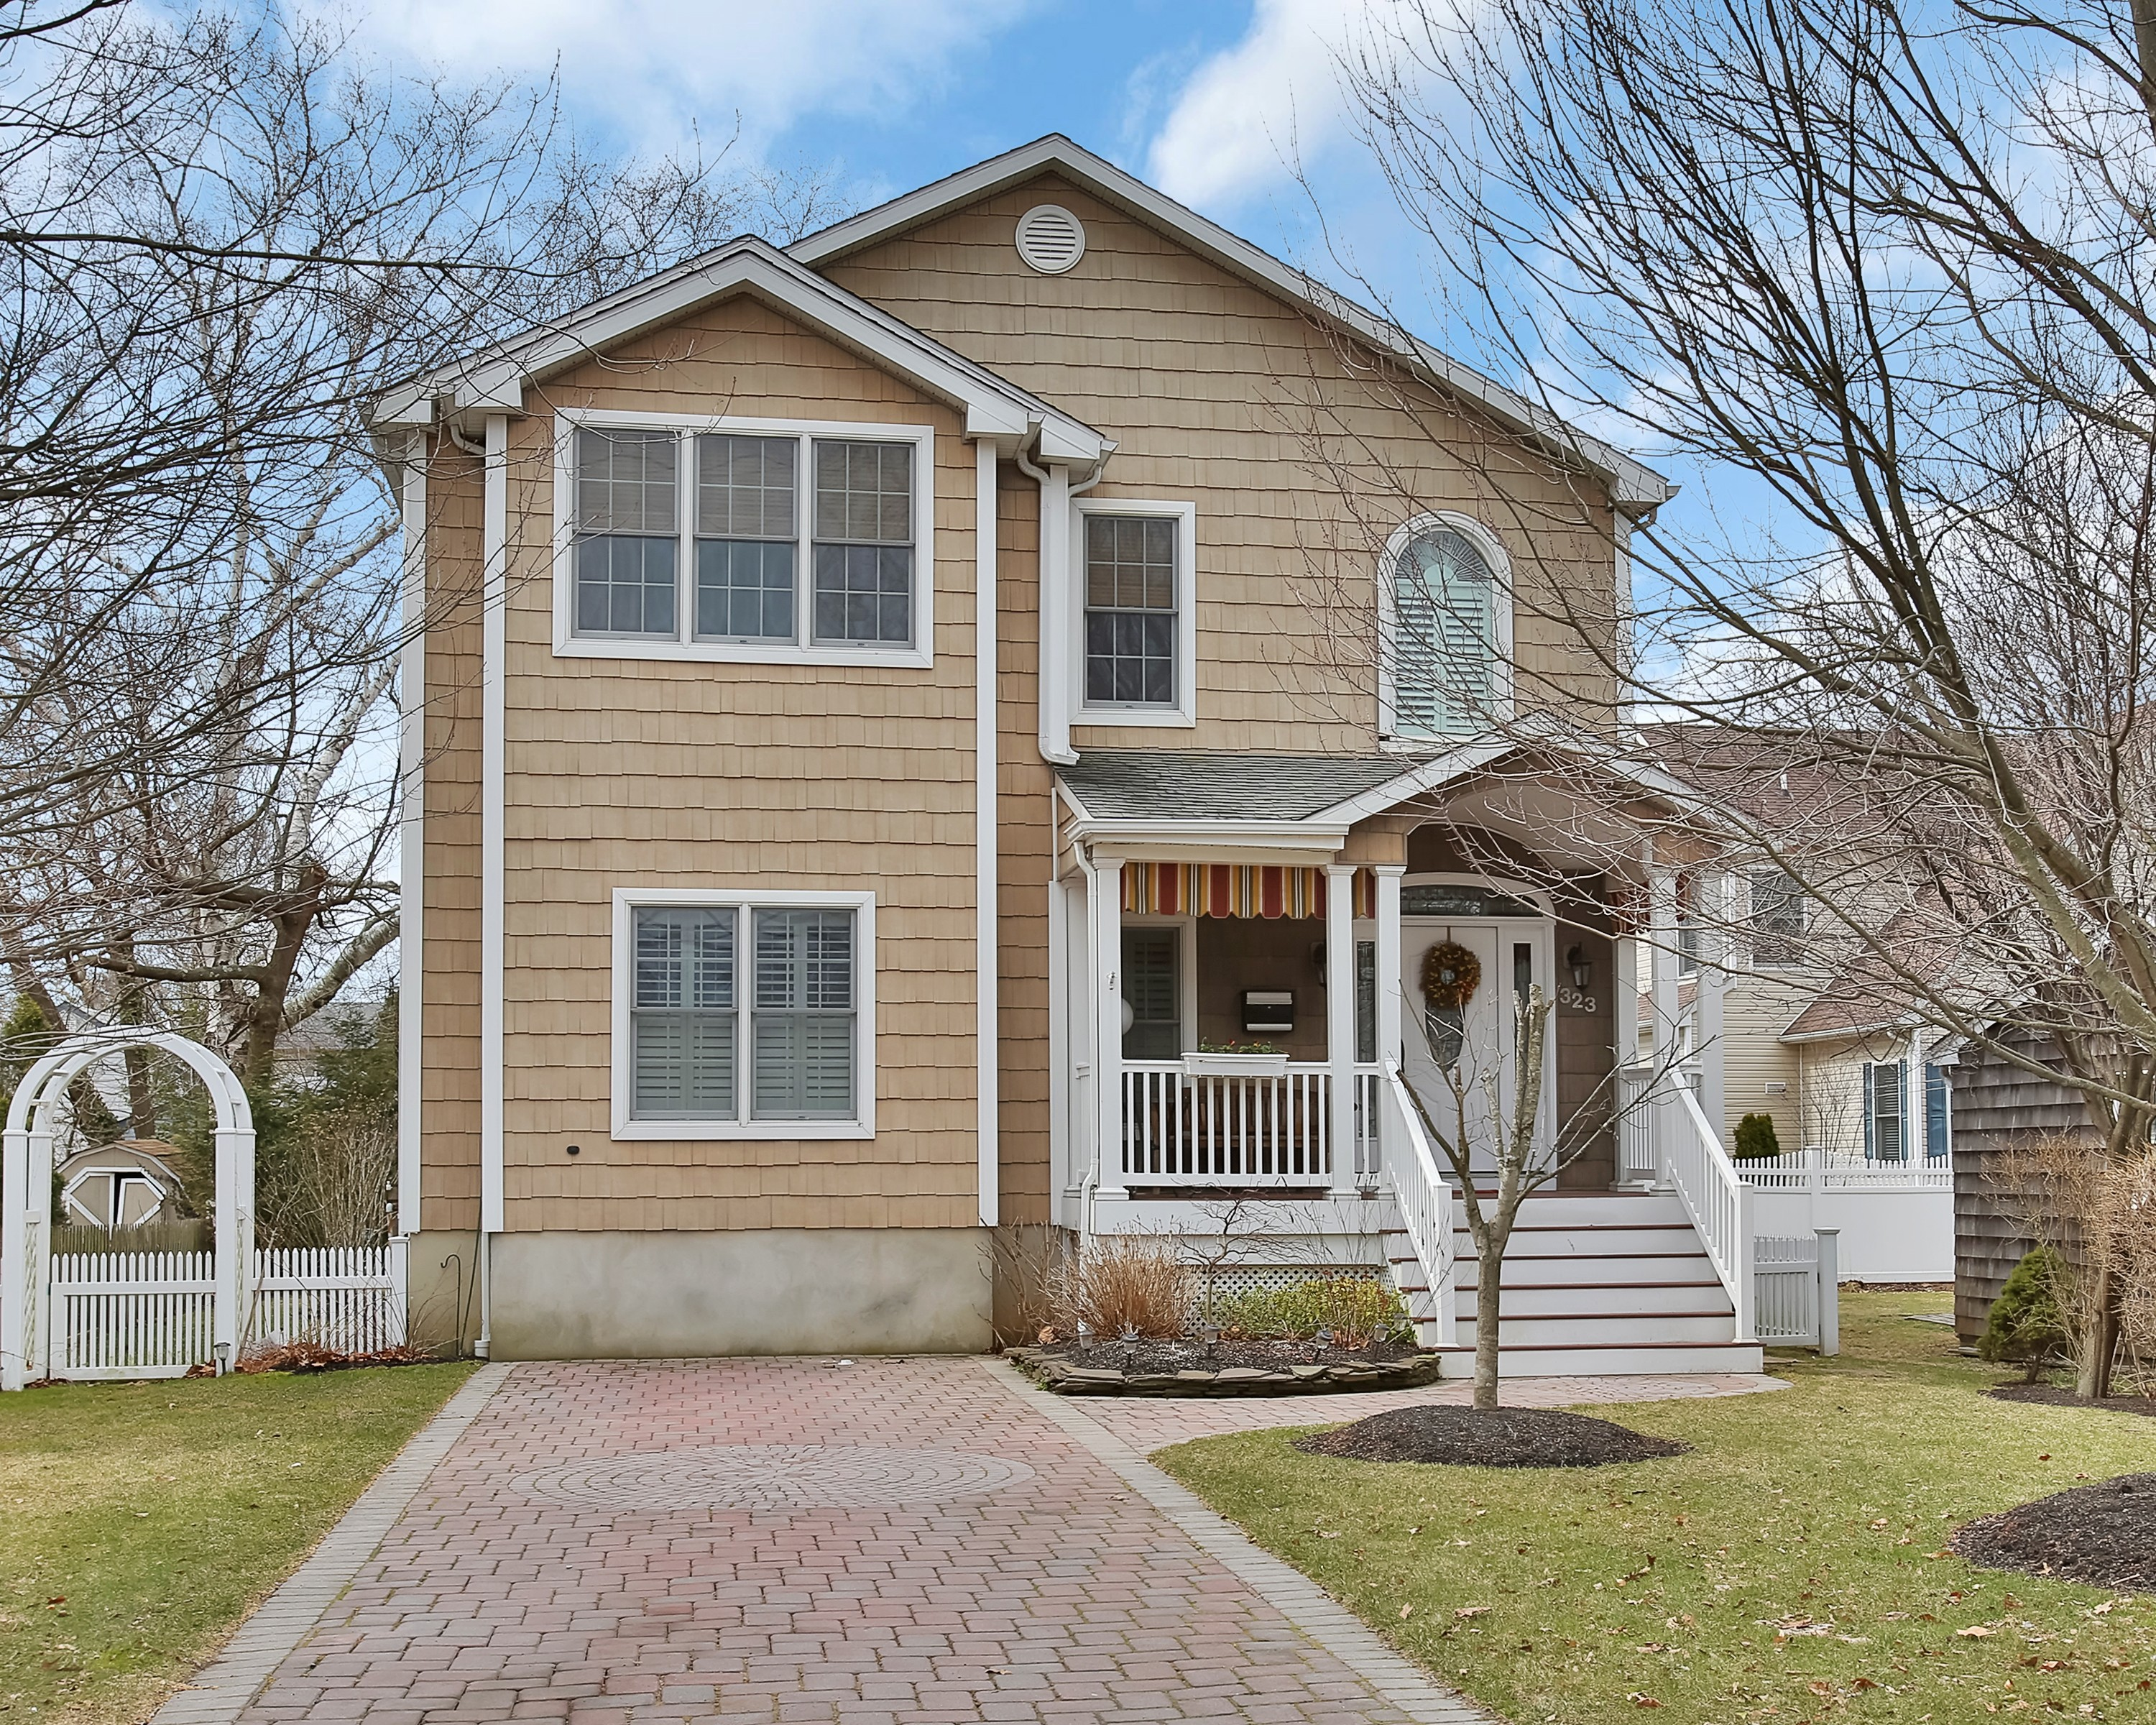 Single Family Home for Sale at Spacious Custom Home 323 E Main St Manasquan, New Jersey 08736 United States